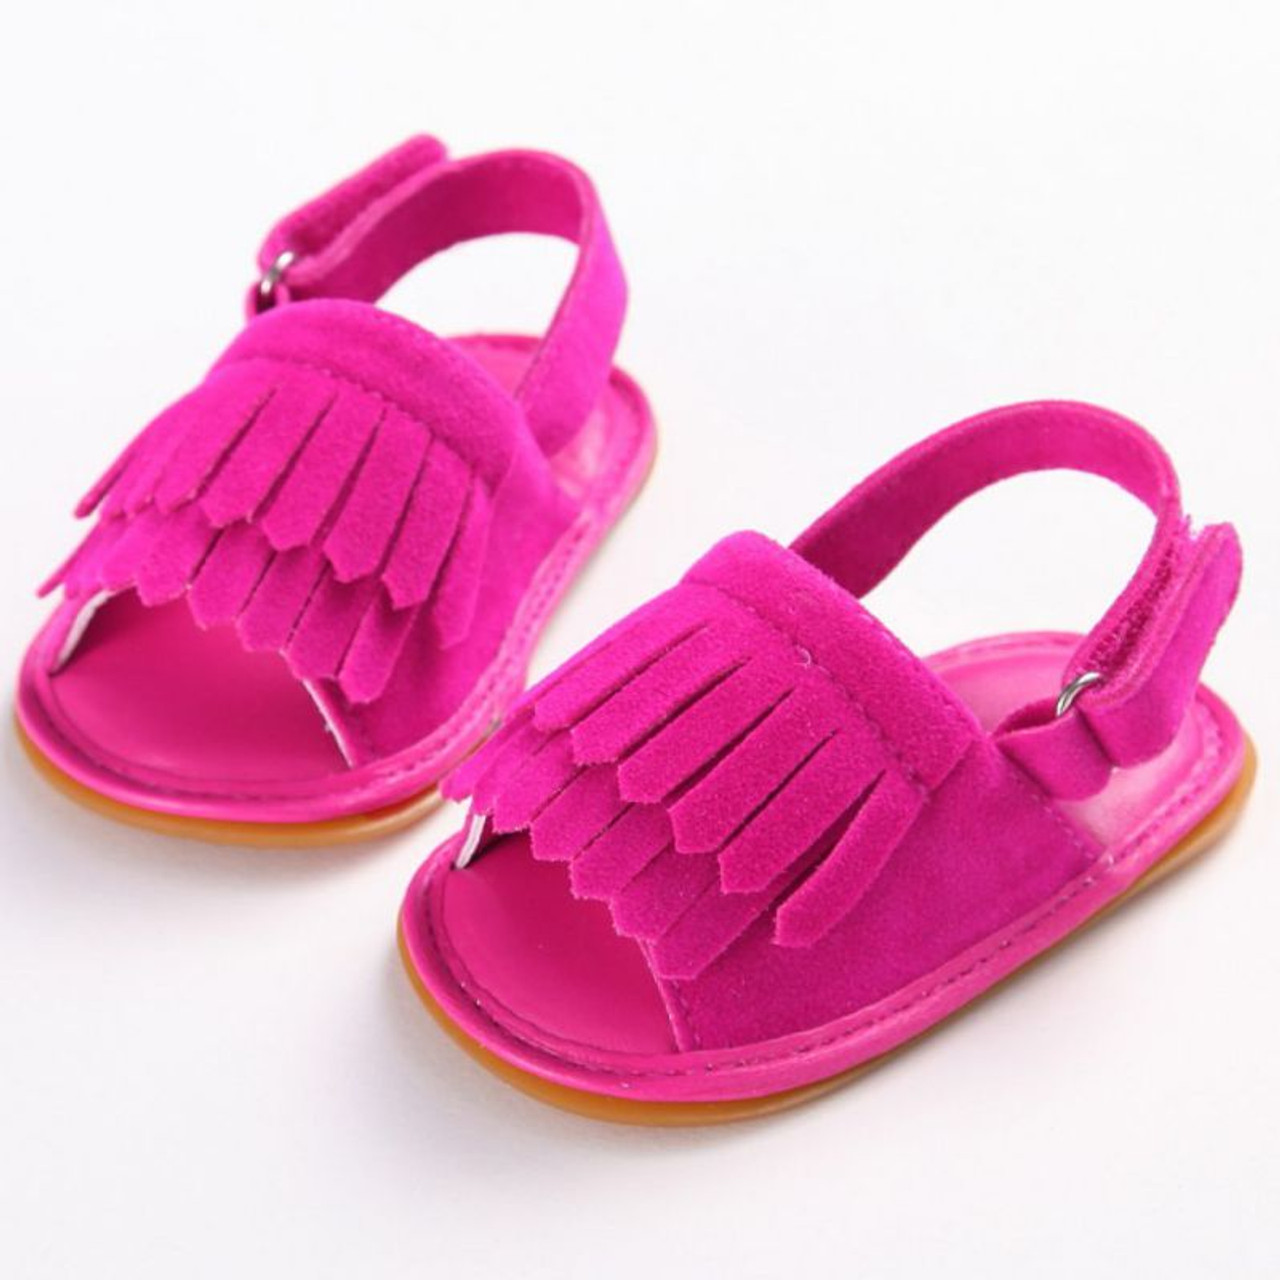 4a9e65cf54 Hot Sale Baby Sandals Summer Leisure Fashion Baby Girls Sandals of Children  PU Tassel Clogs Shoes 7 Colors